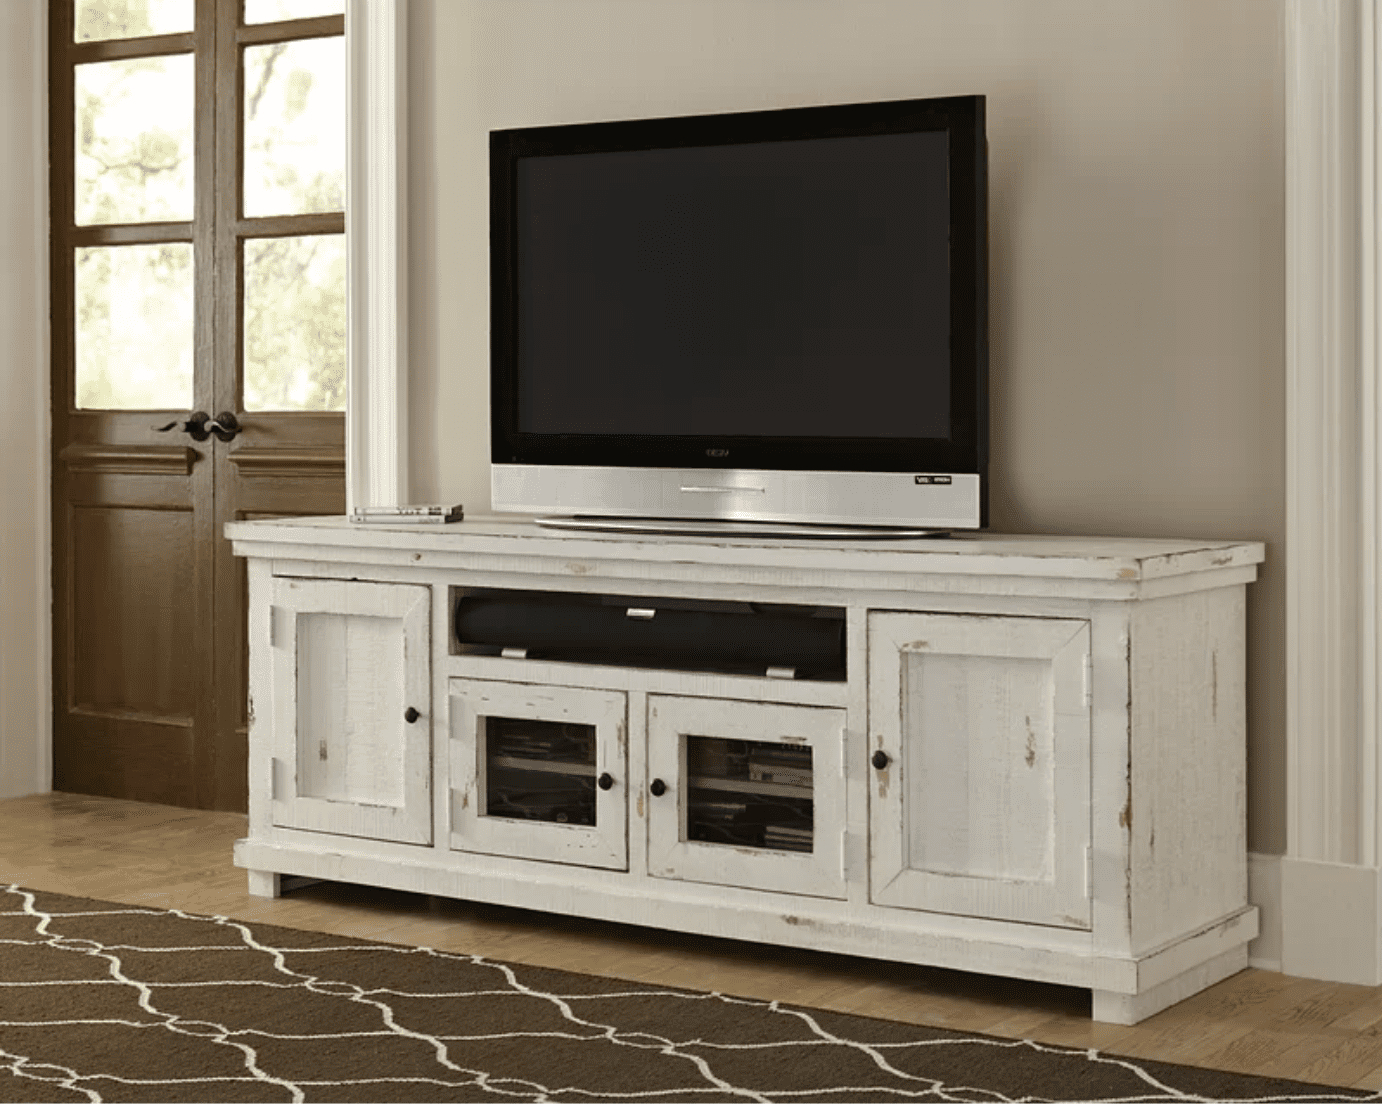 The 8 Best Tv Stands Of 2020 Regarding Eutropios Tv Stand With Electric Fireplace Included (View 7 of 20)